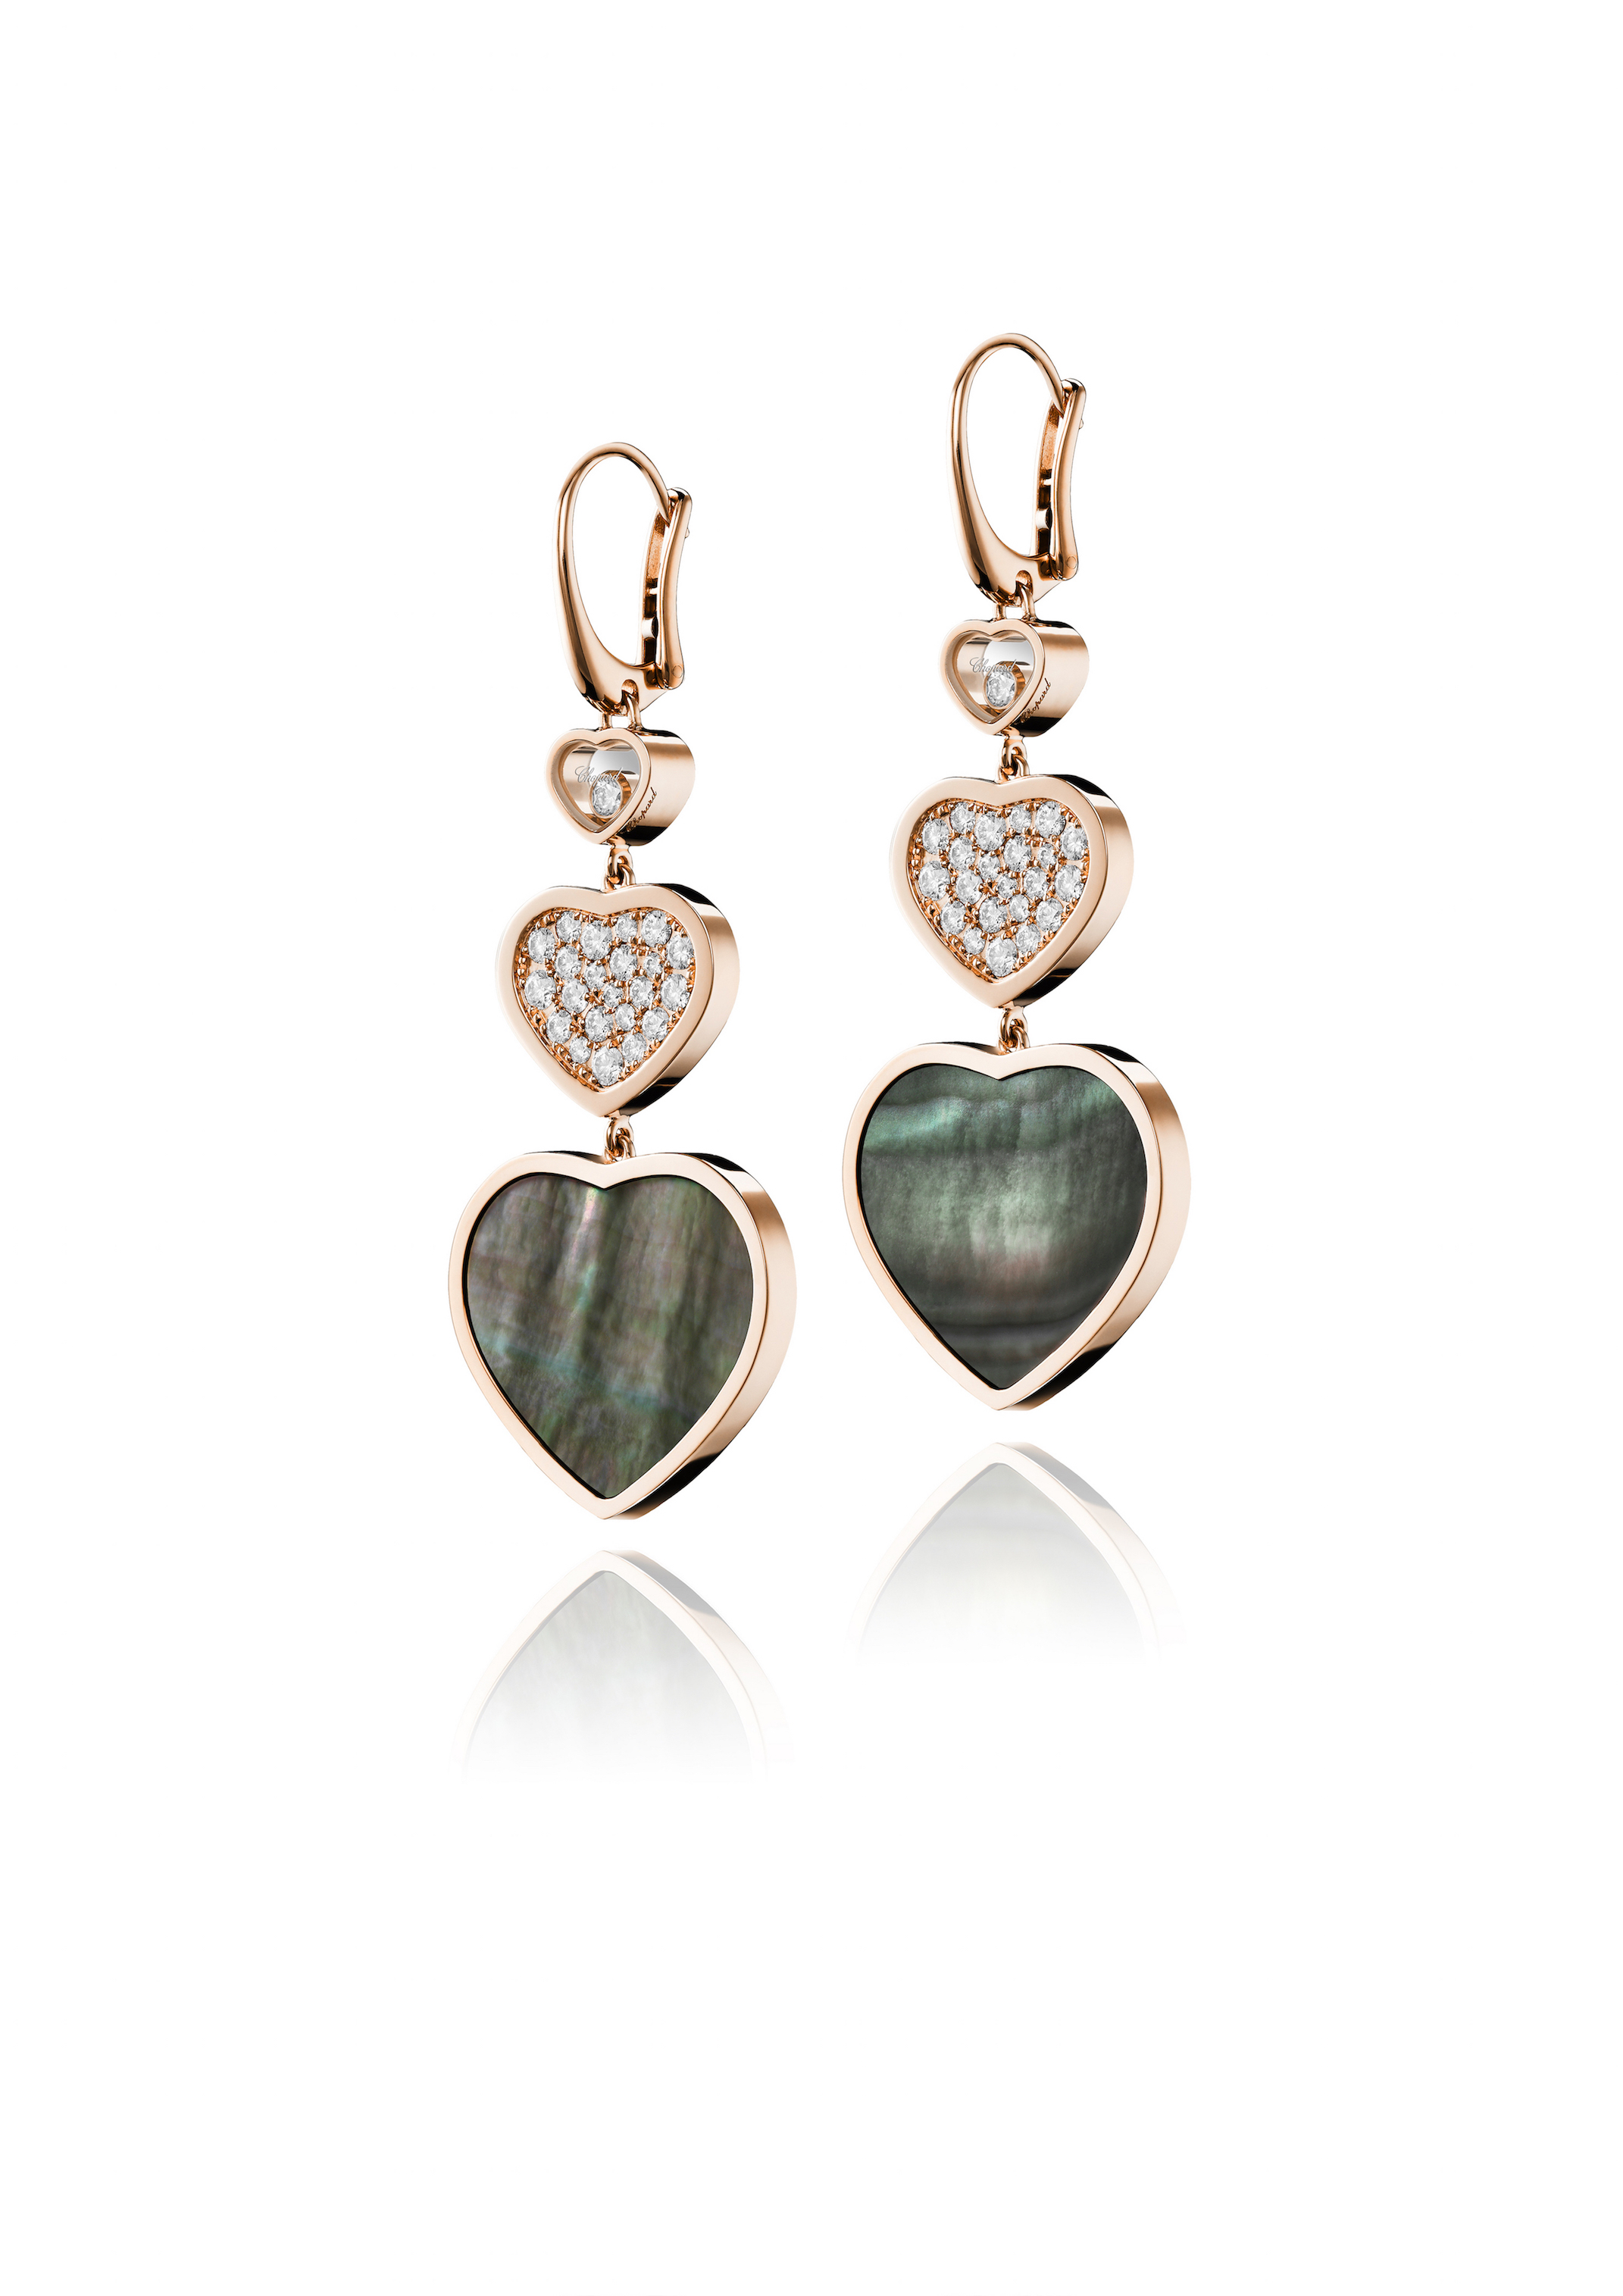 Happy Hearts earrings in rose gold set with black Tahiitian mother-of-pearl and diamonds. (Photo: Courtesy of Chopard)